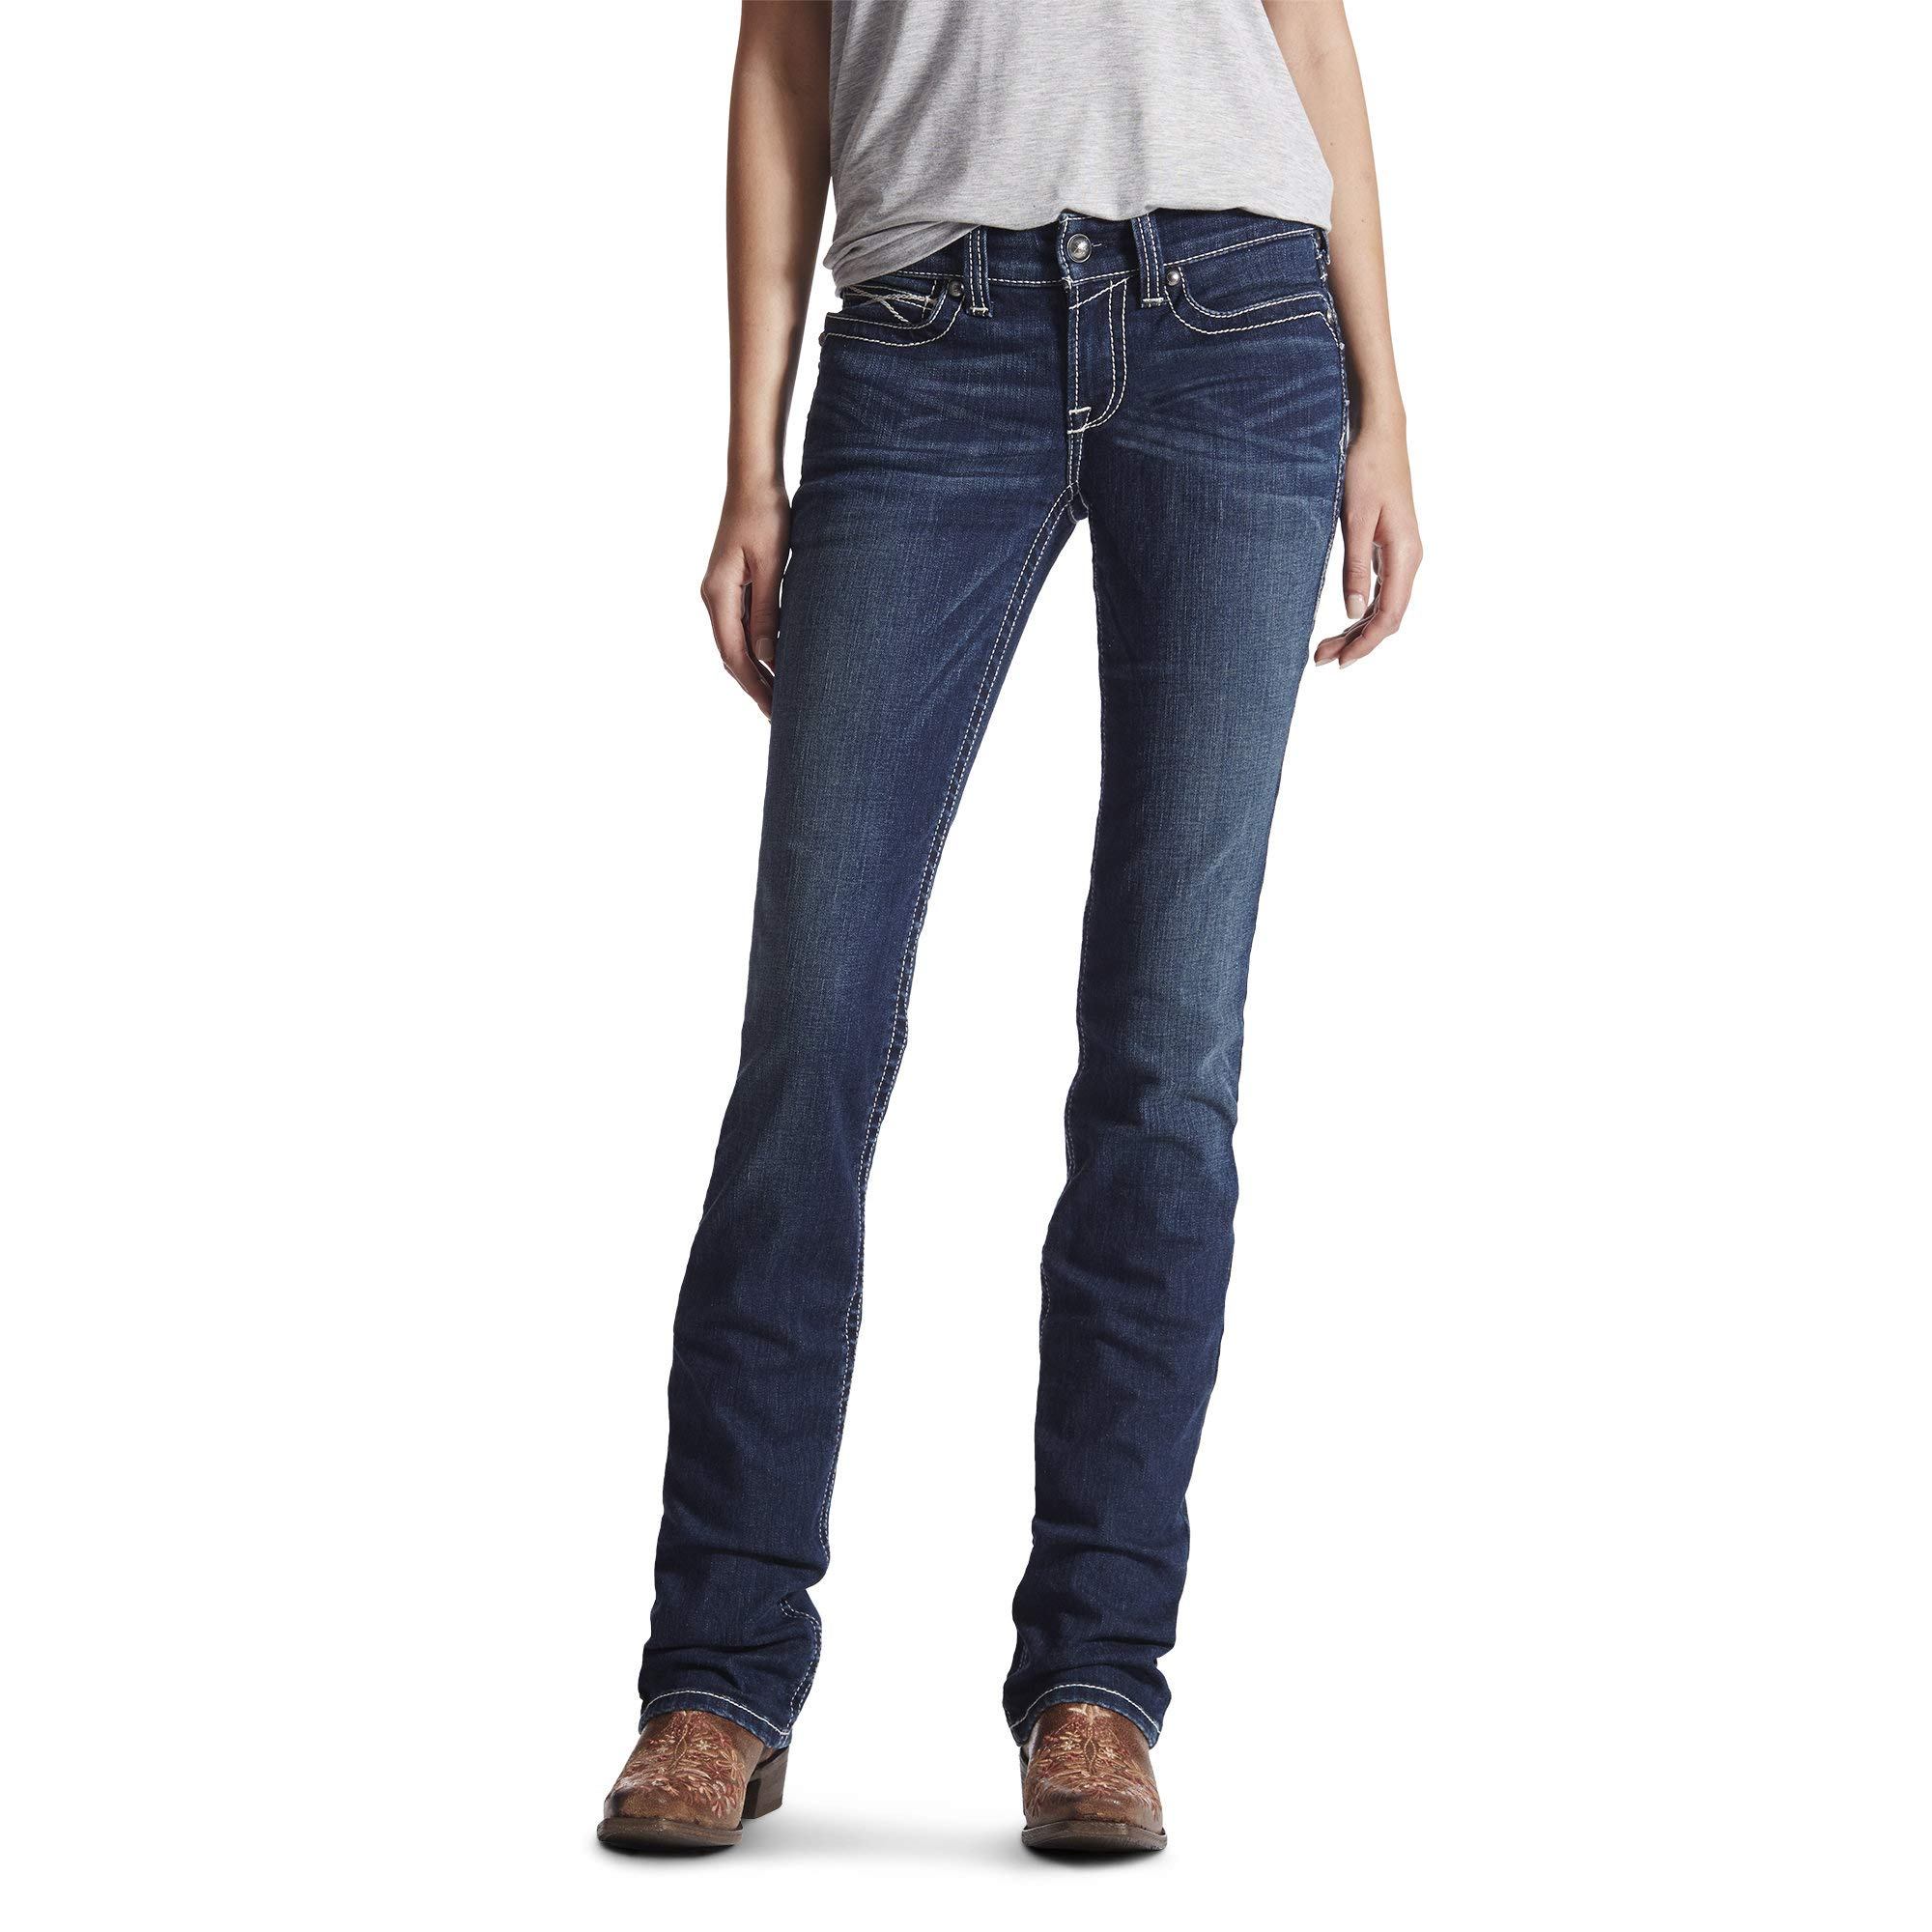 ARIAT Women's R.e.a.l. Mid Rise Stretch Icon Stackable Straight Leg Jean Ocean Size 32 Short